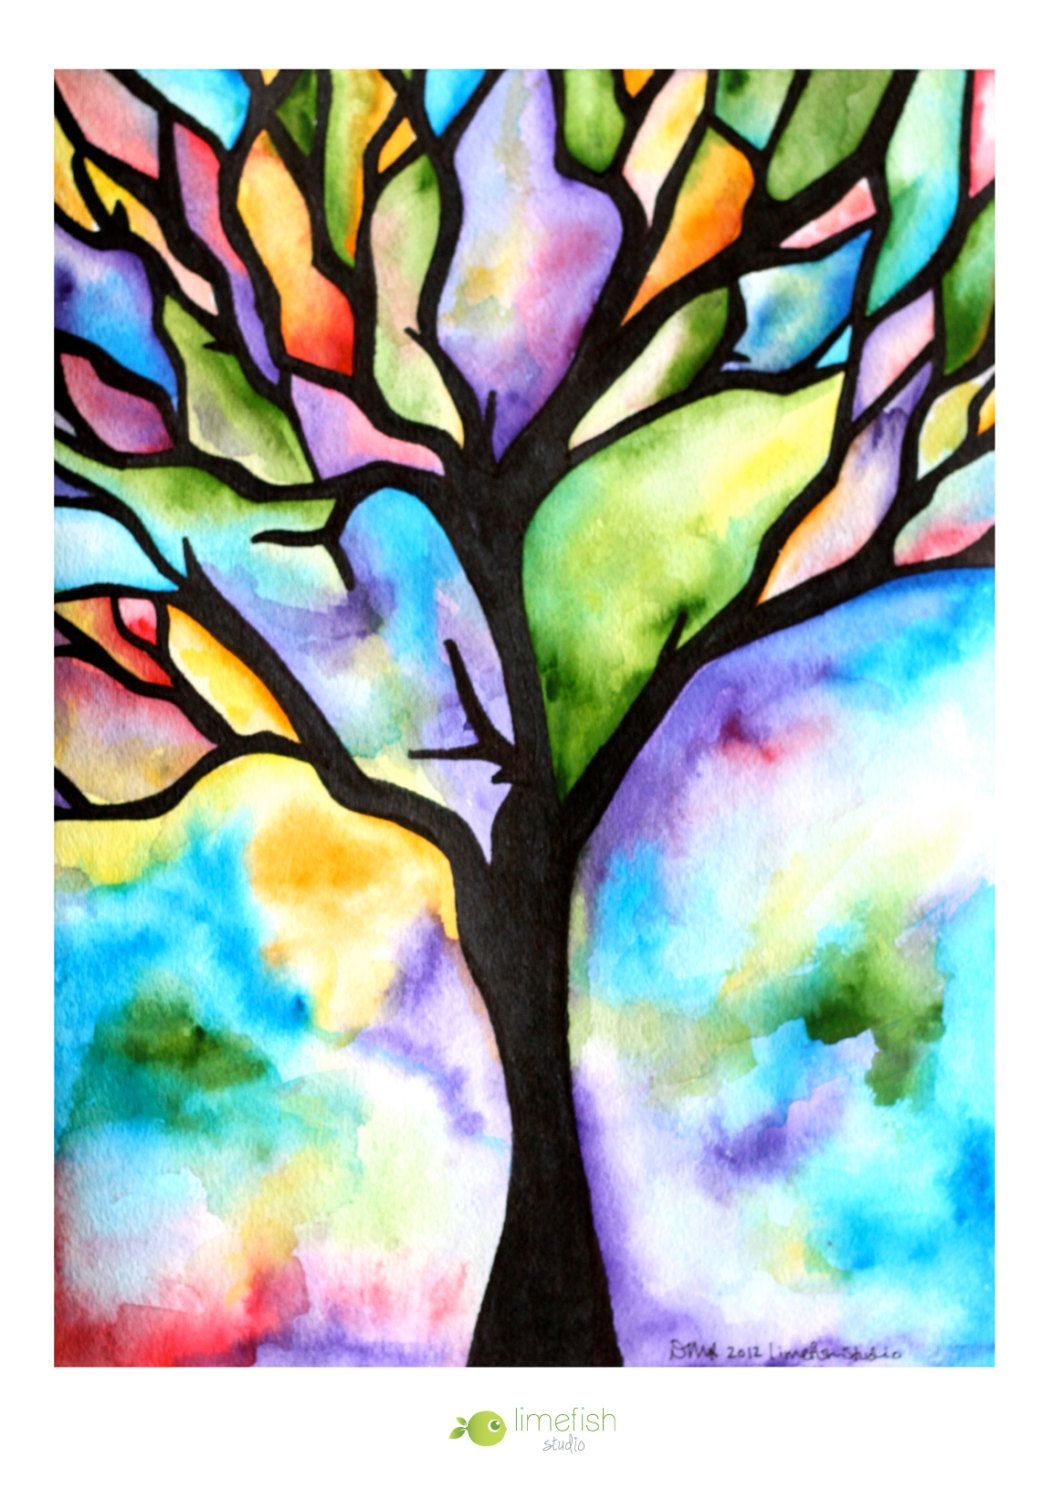 Easy Things To Paint Made To Order Watercolor Painting Tree Silhouette Colorful